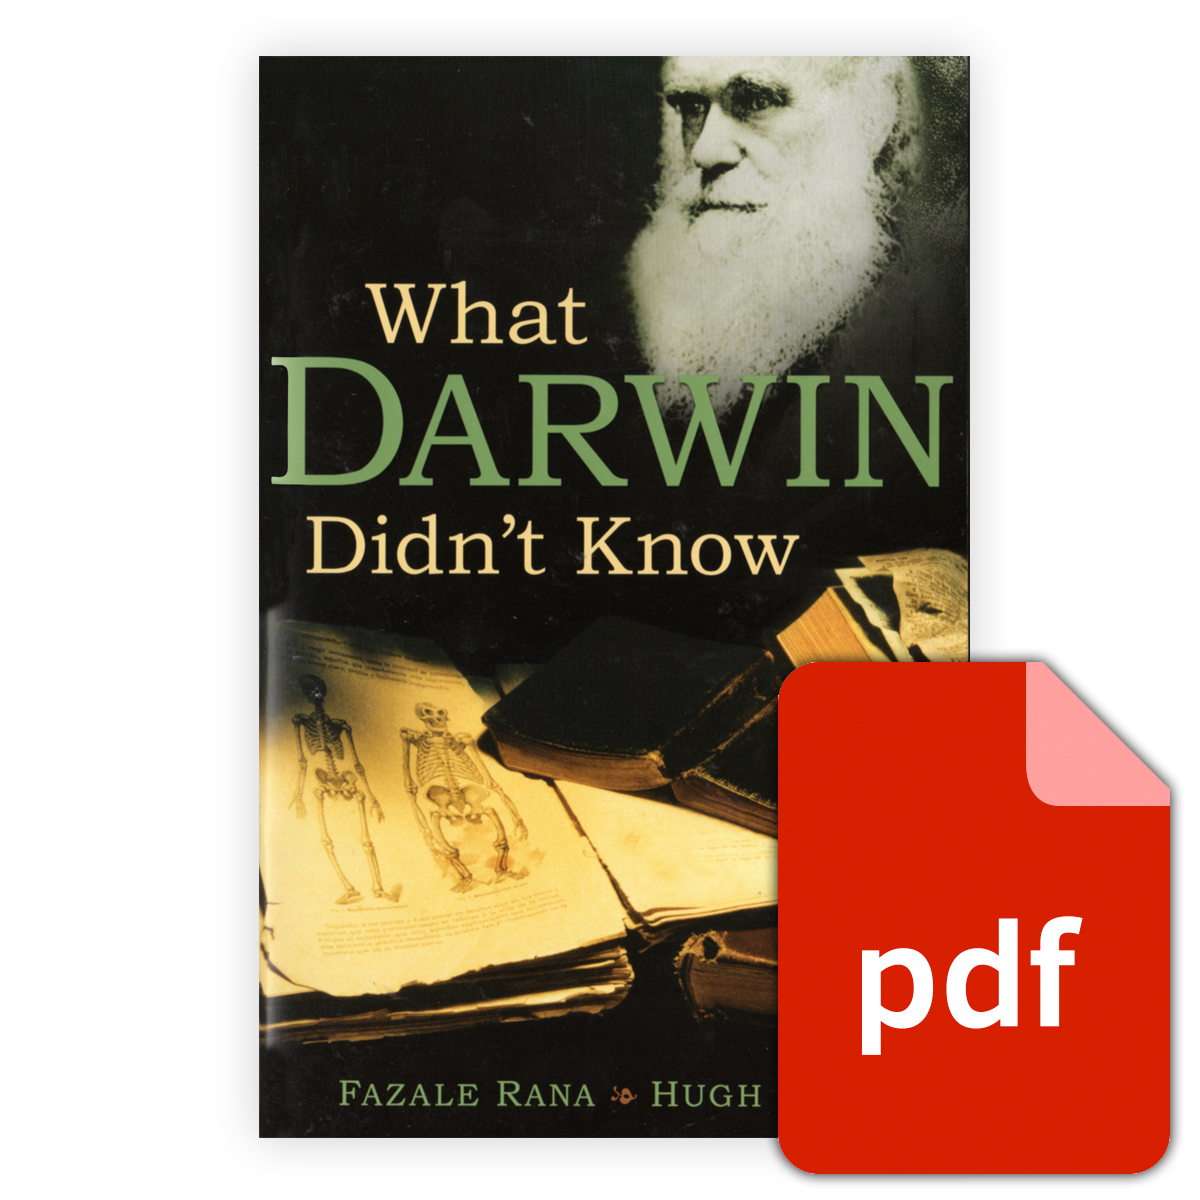 What Darwin Didn't Know (PDF) Image